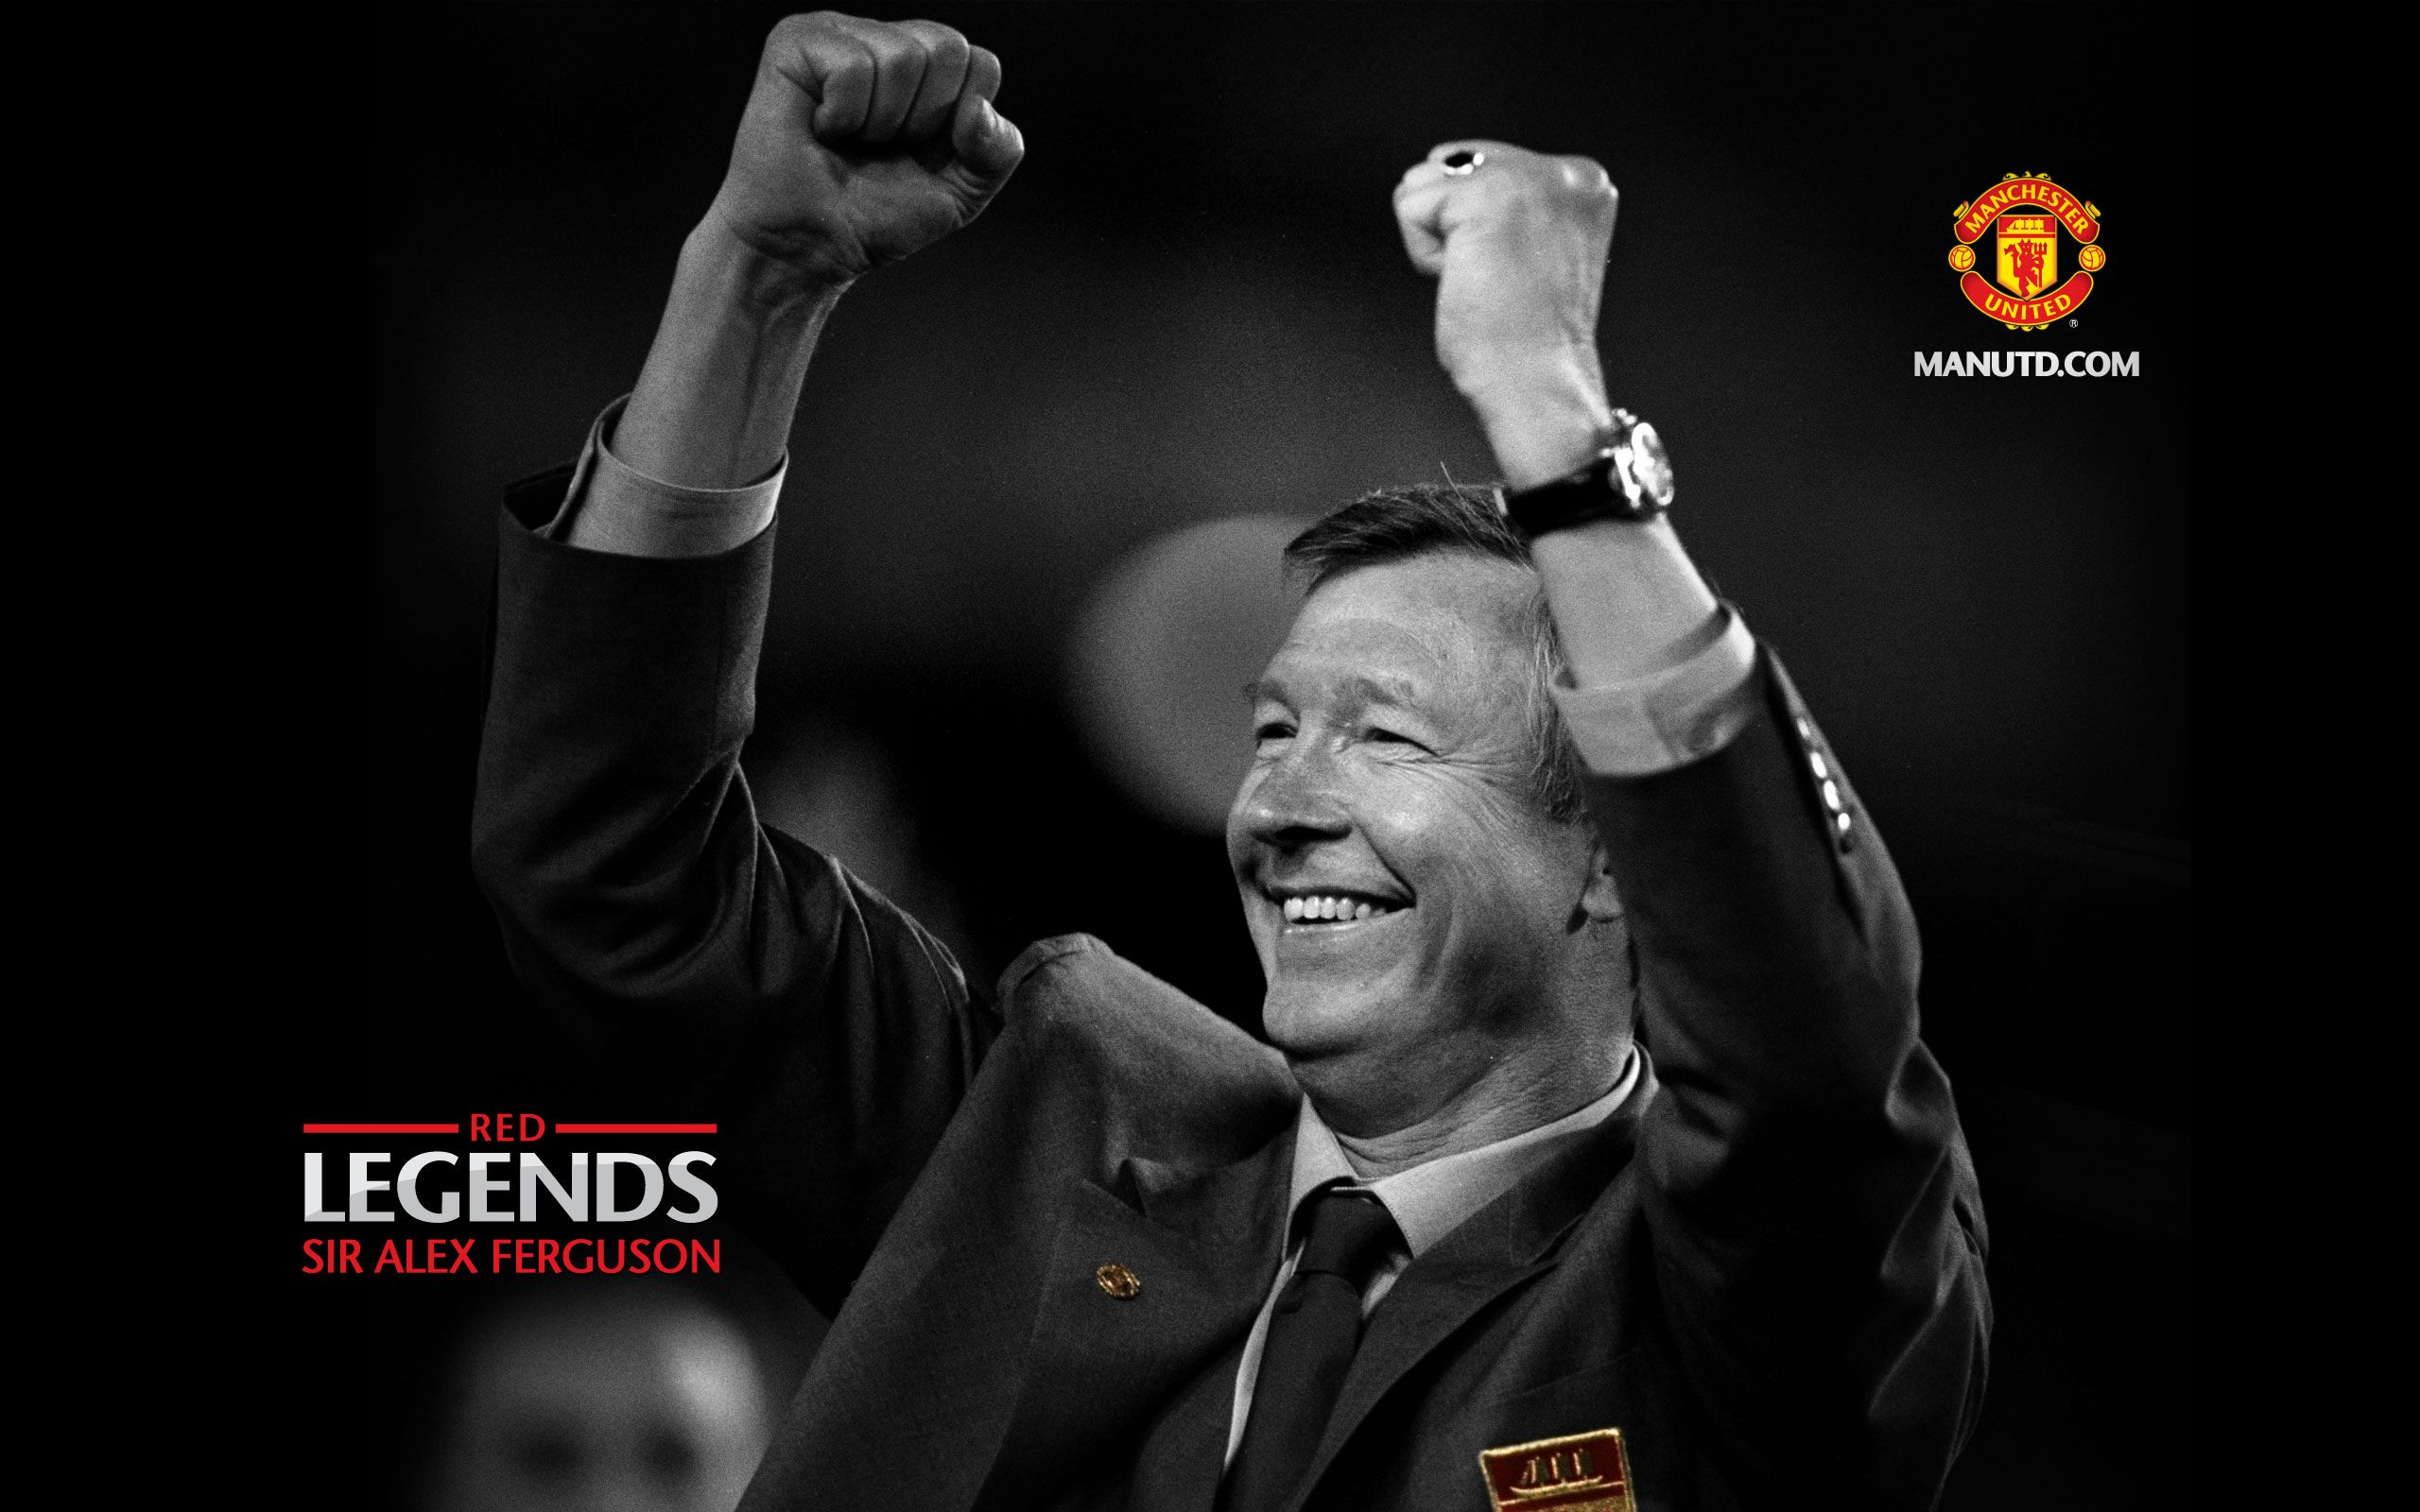 Sir Alex Ferguson, there will never be a greater coach